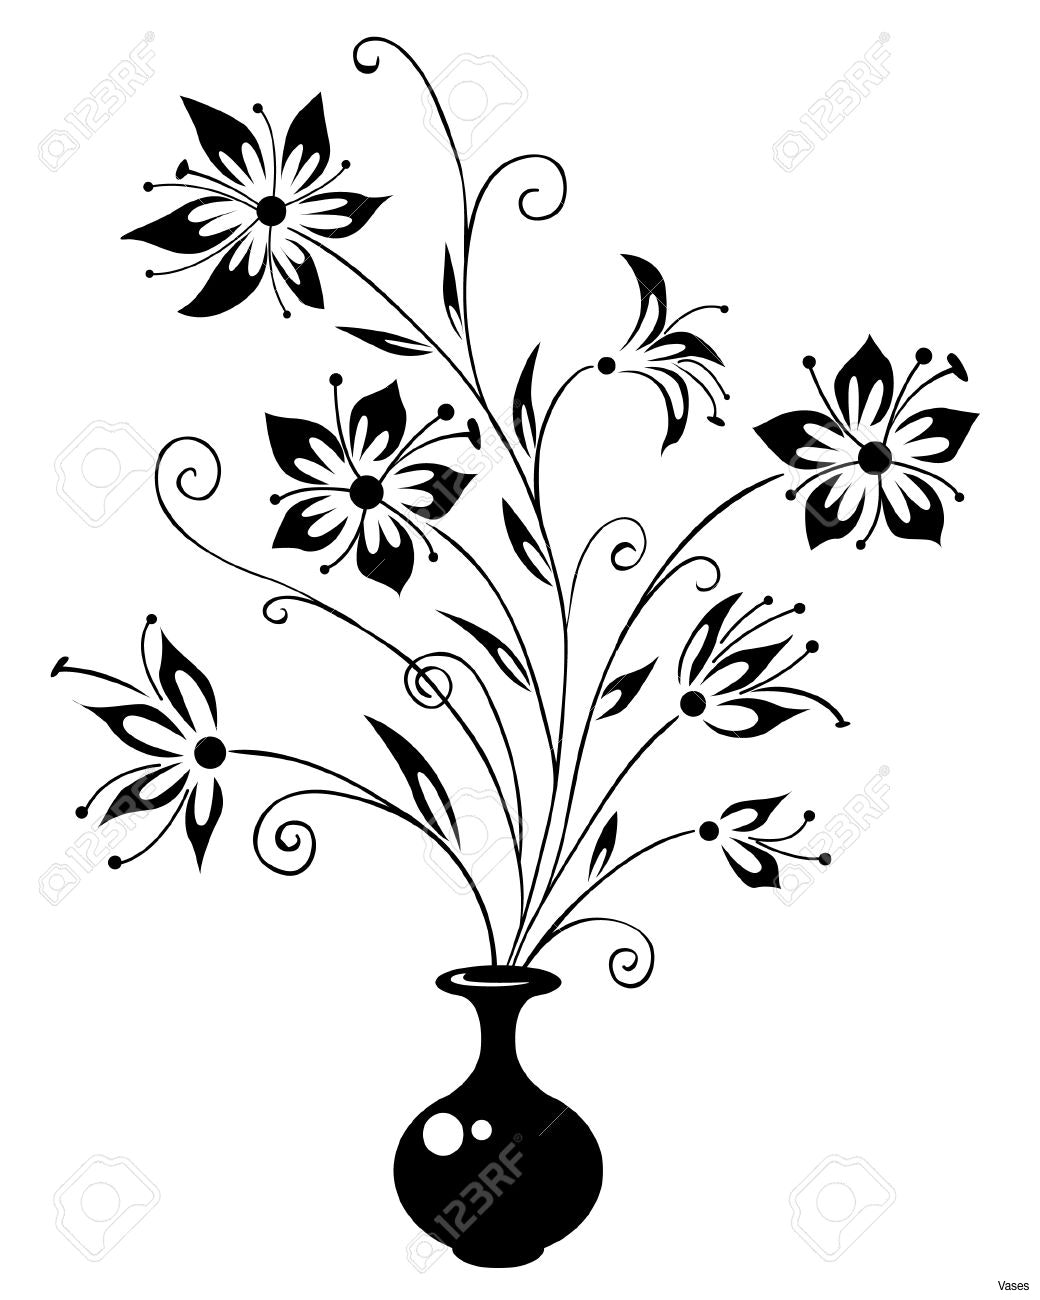 1040x1300 Pencil Sketches Of Flower Vase Drawings Flowers In A Drawing